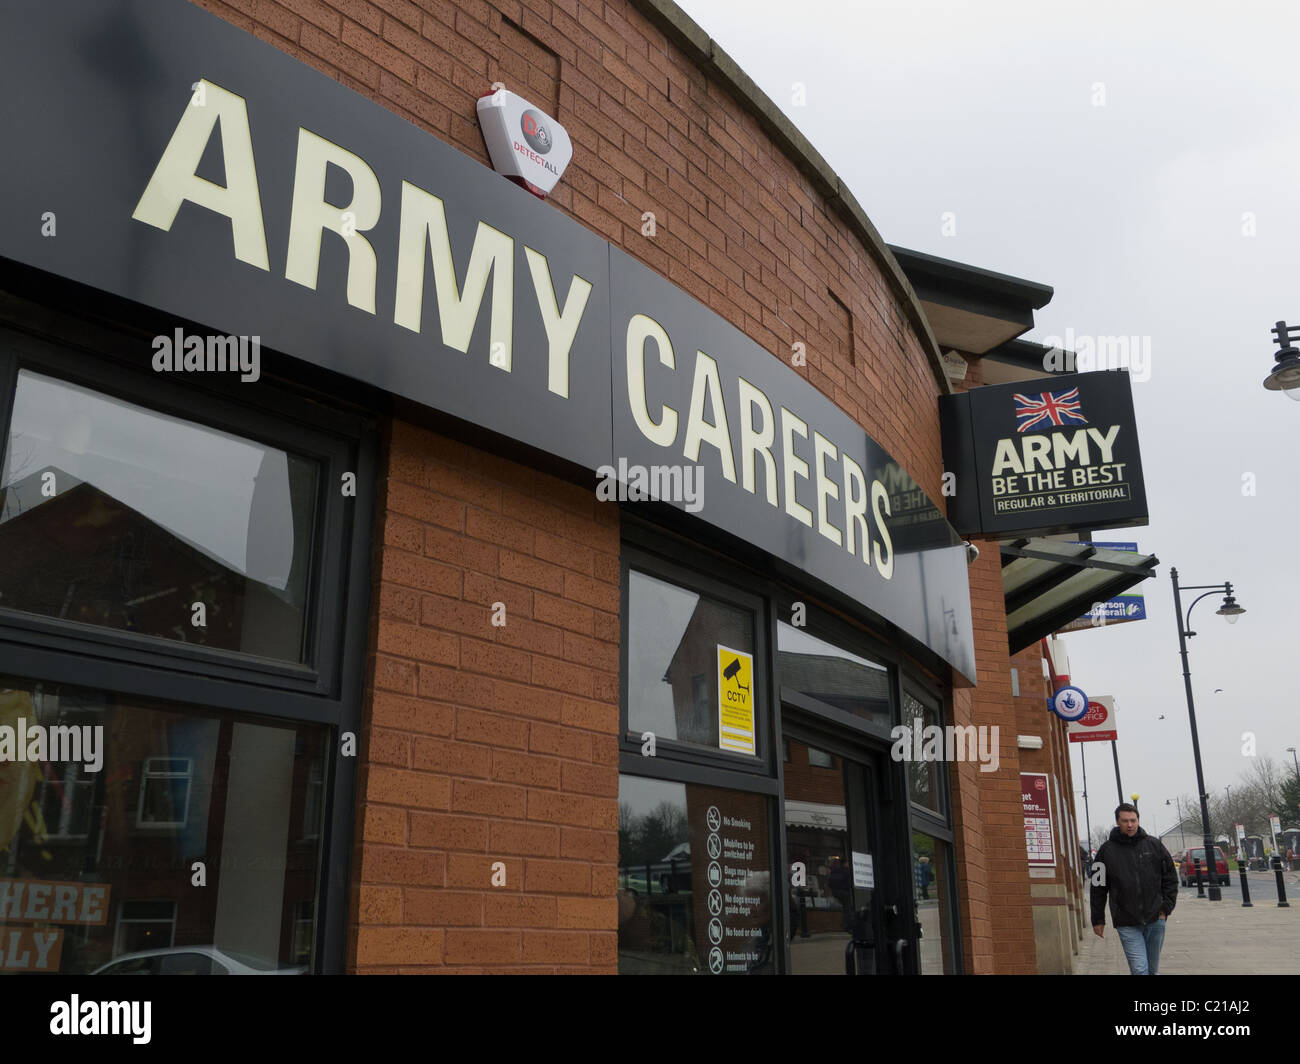 Army careers advice centre, Oldham, Lancs - Stock Image